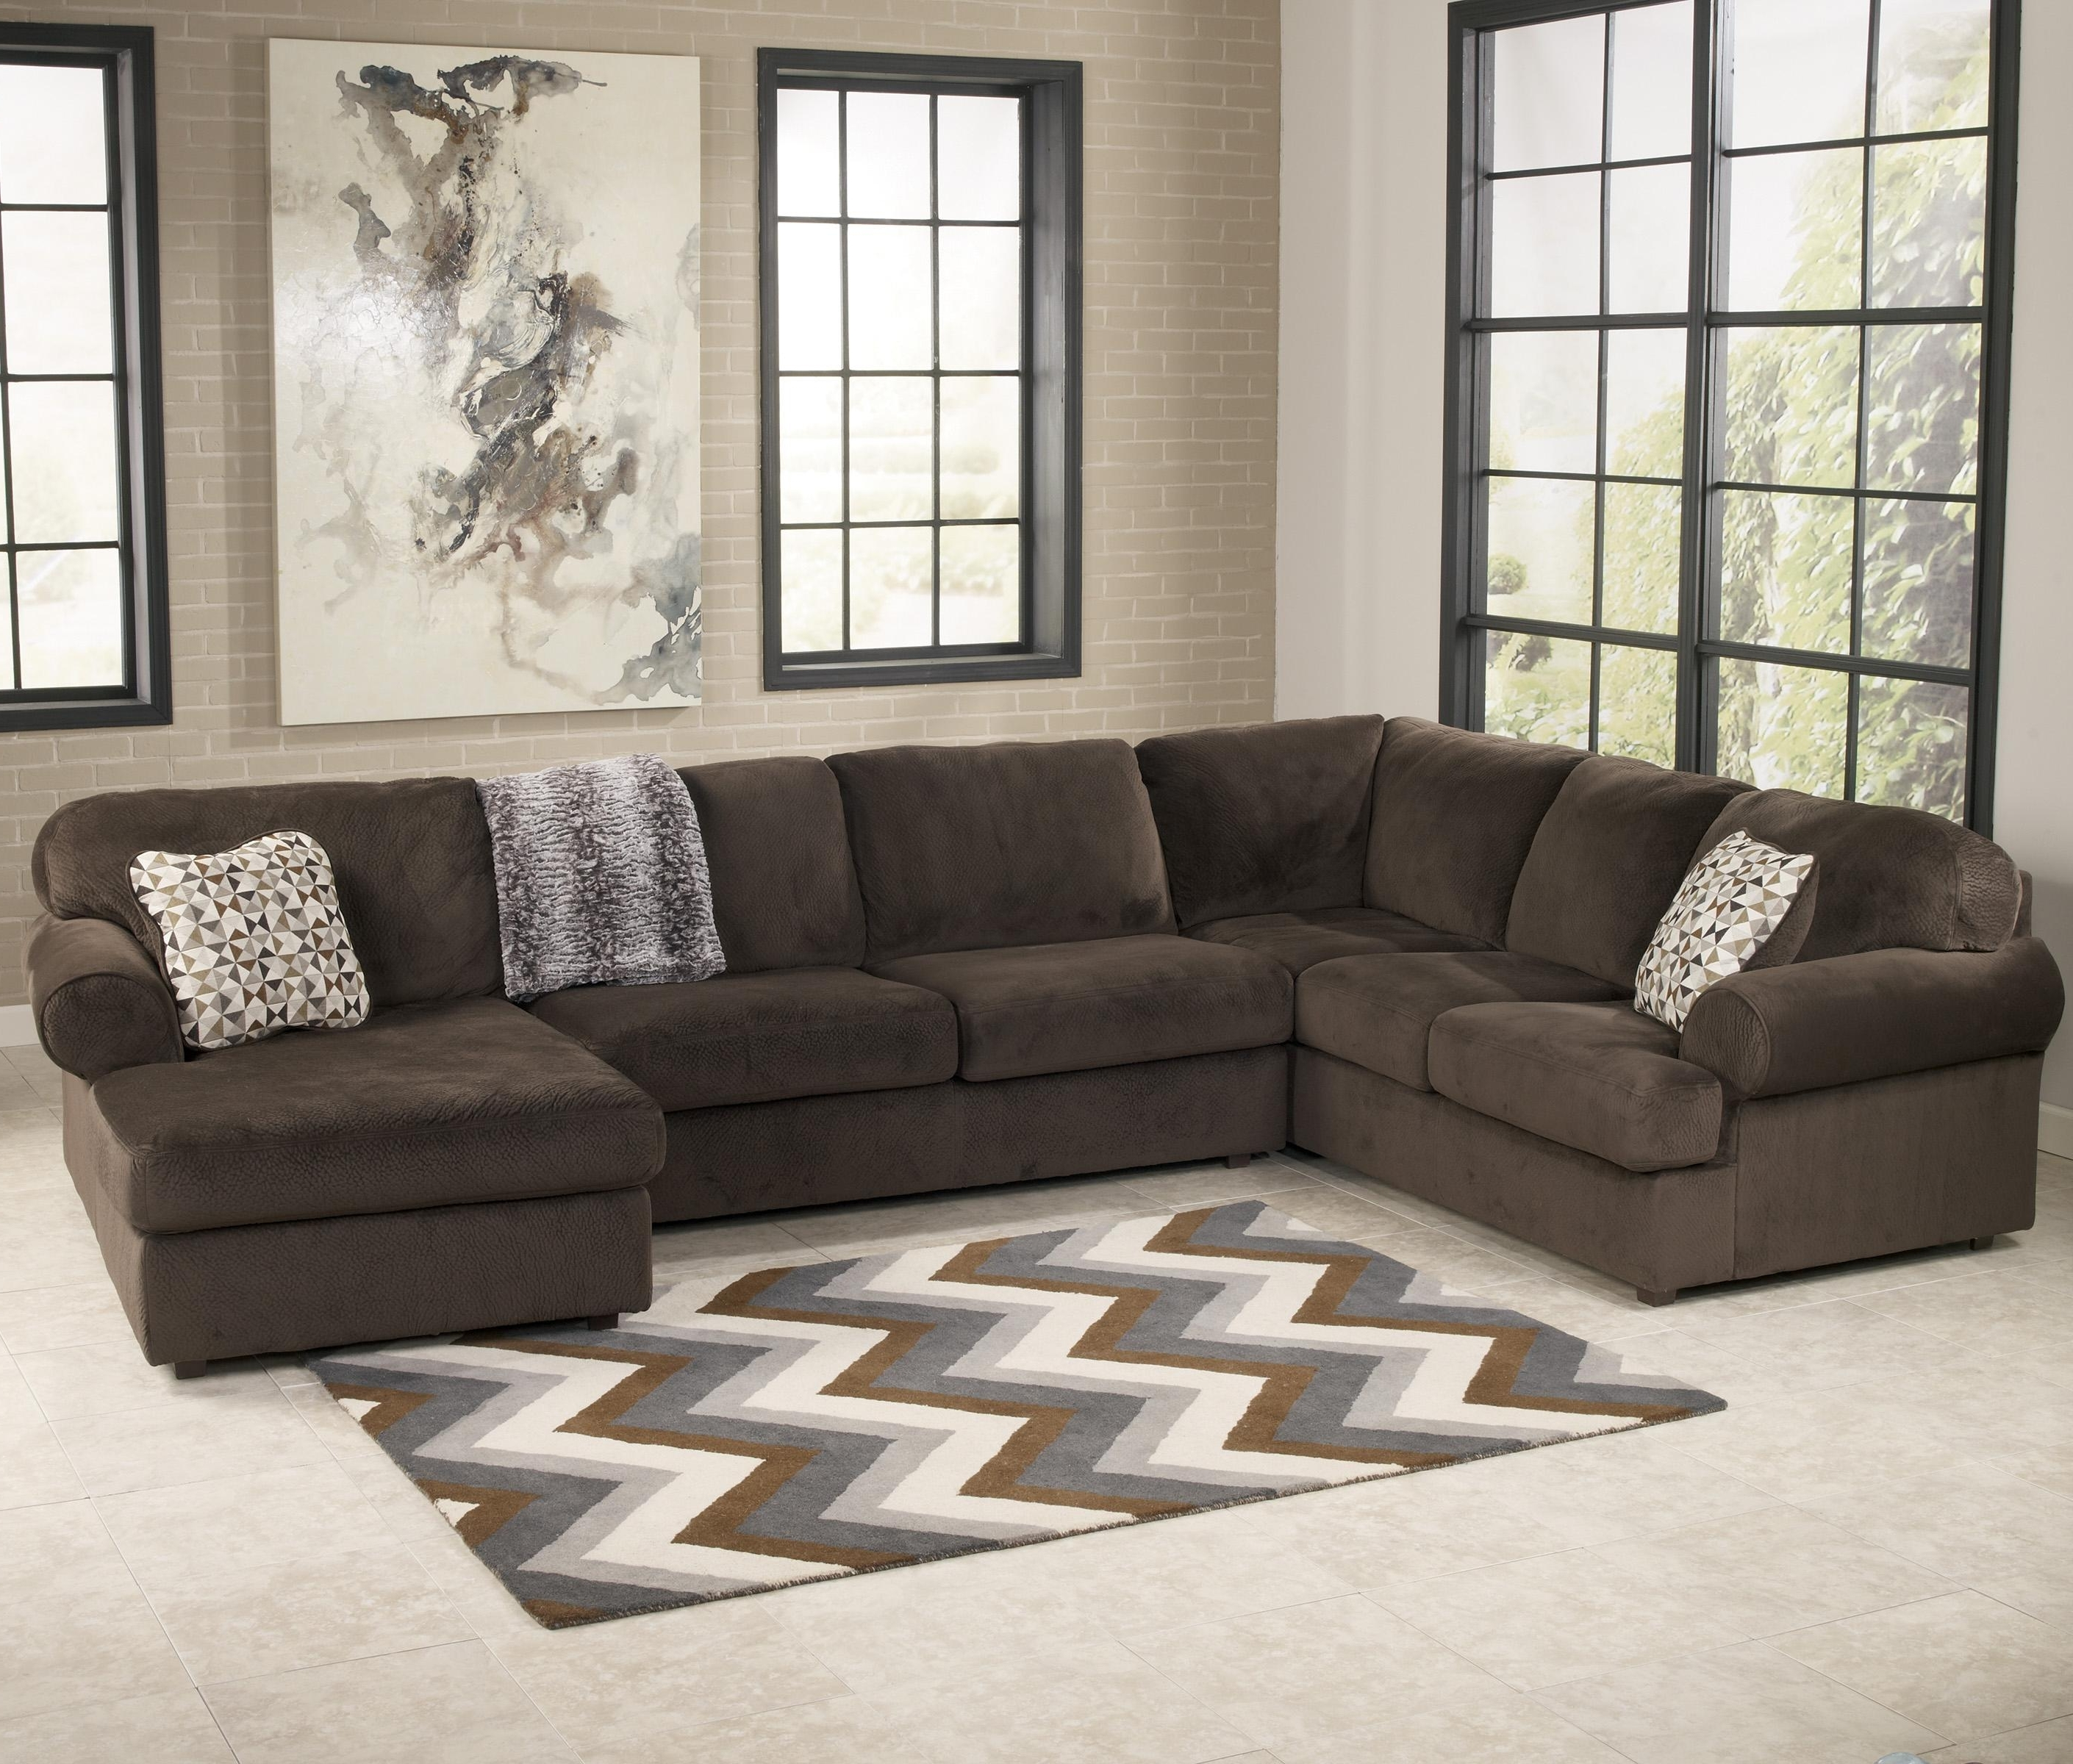 Nh Sectional Sofas Throughout Well Known Furniture & Sofa: Efo Furniture (View 13 of 15)